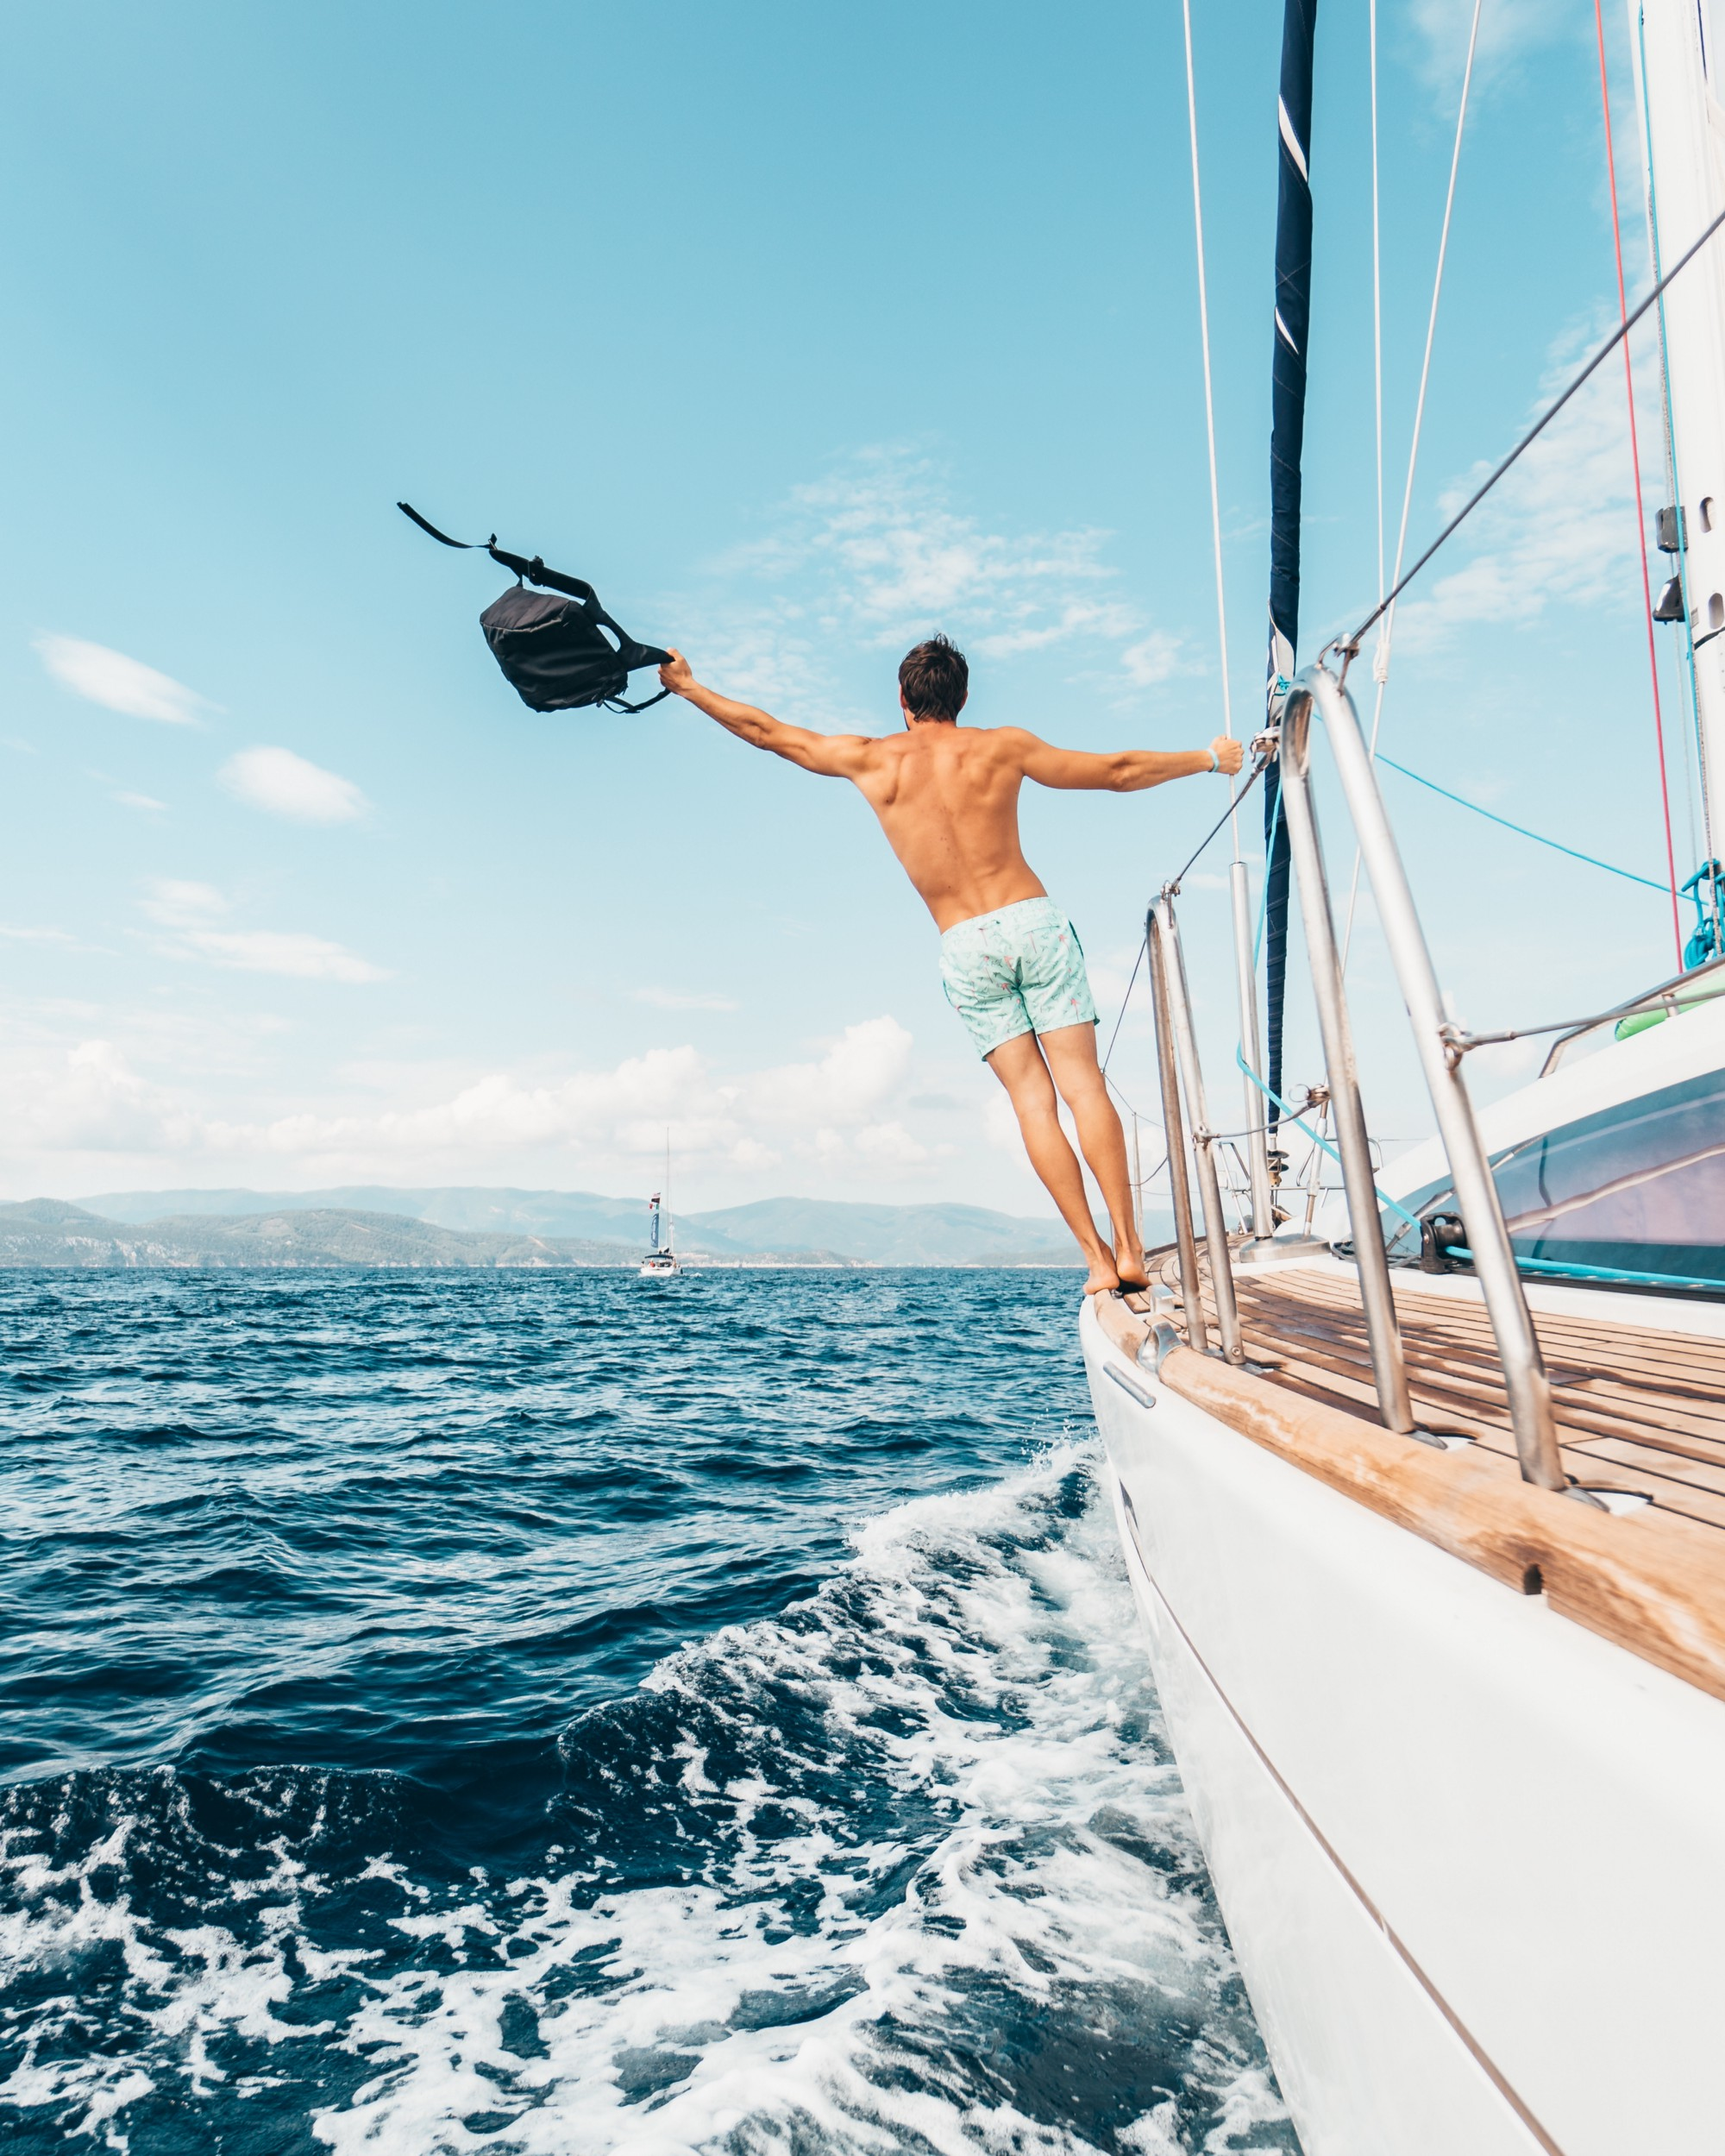 A topless man stands on the edge of the yacht while waving his backpack